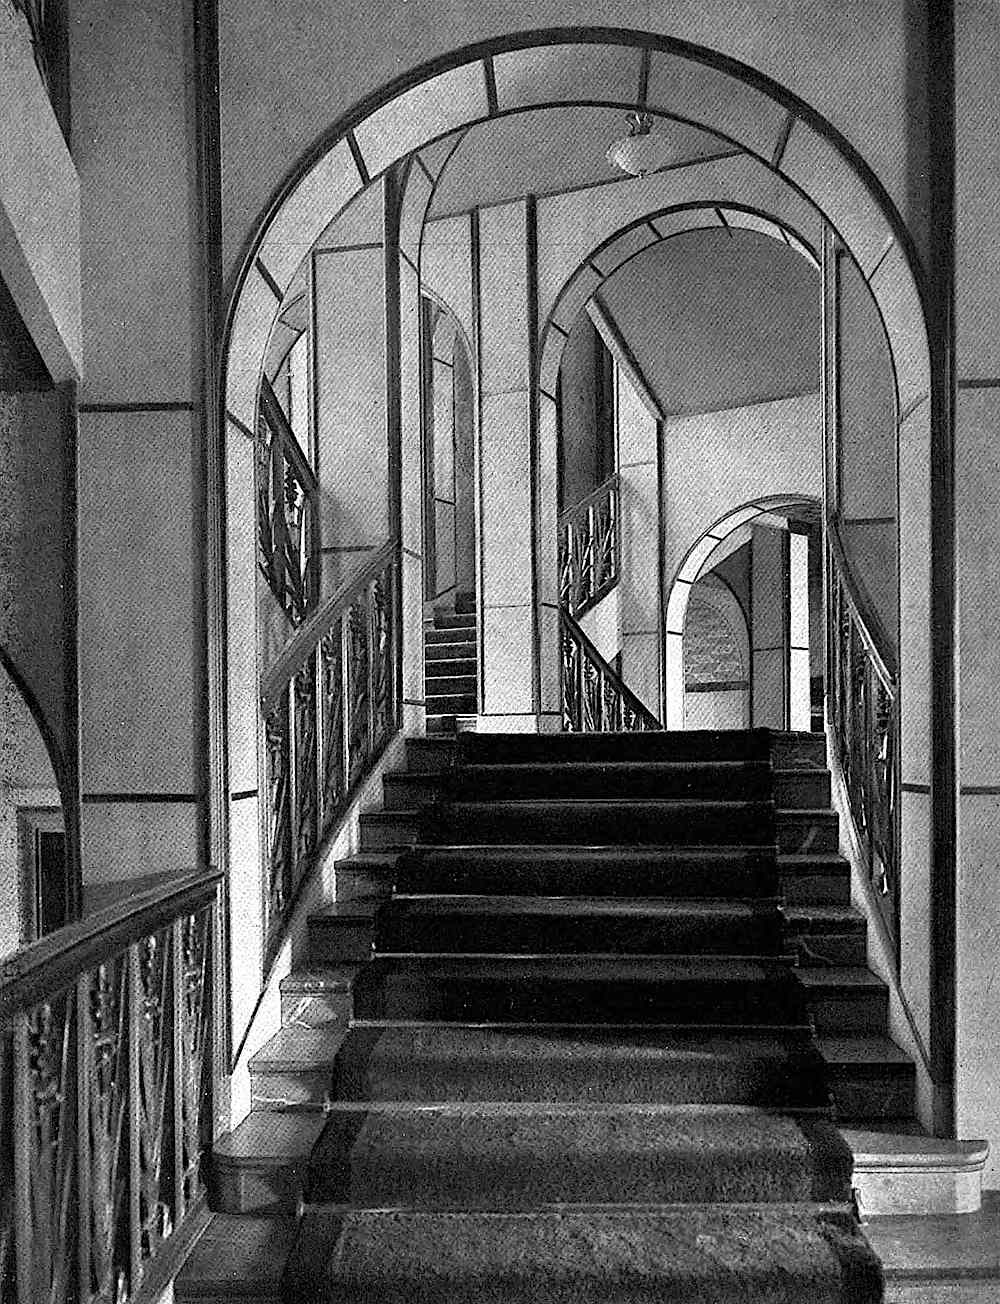 Paul Mebes stairs architecture, a photograph